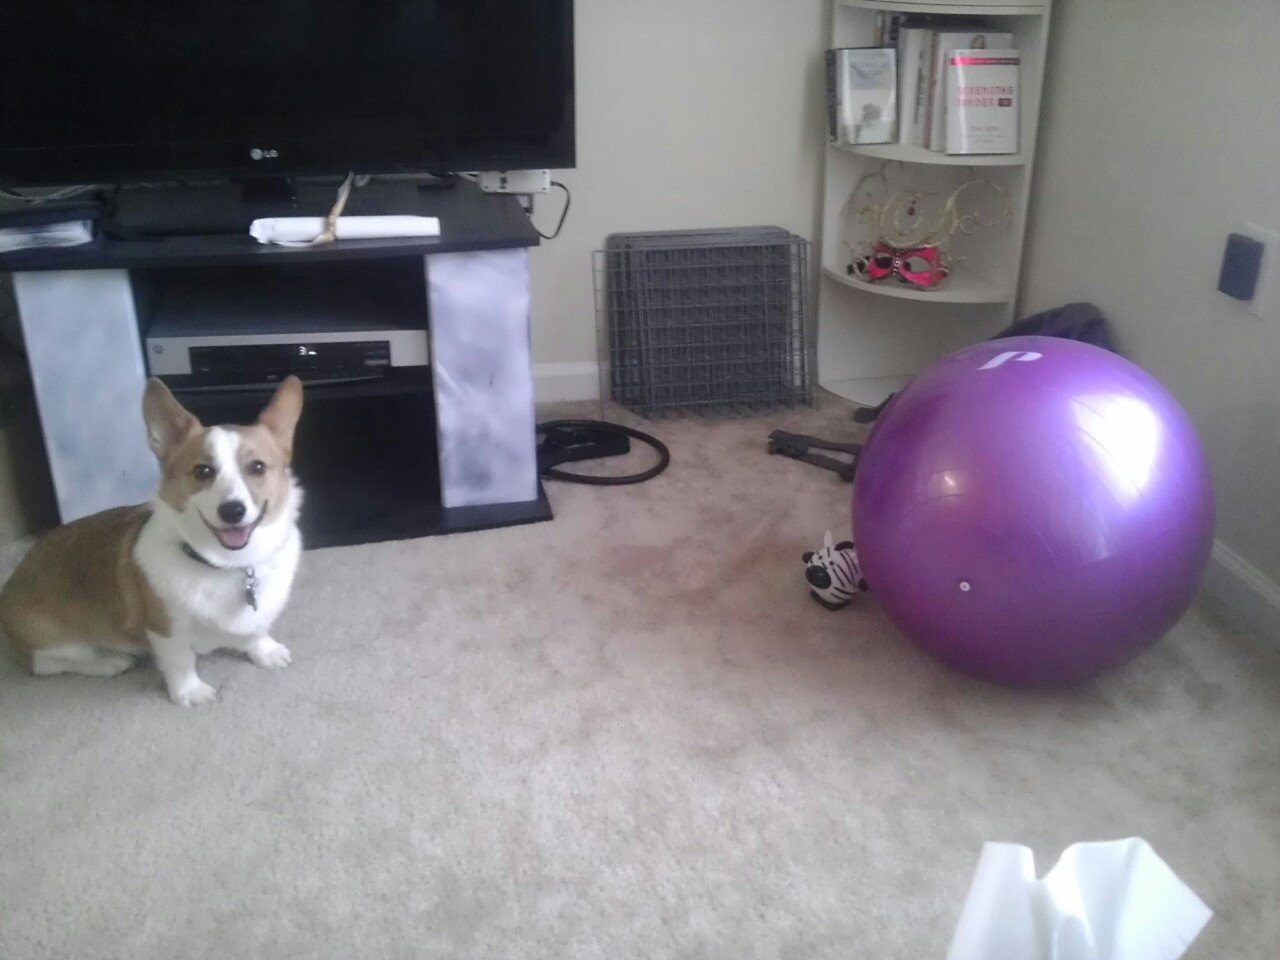 He loves his little zebra squeaker toy but he's terrified of the fitness ball. I hope that one day he'll get over his fear by rescuing a toy from the evil ball.